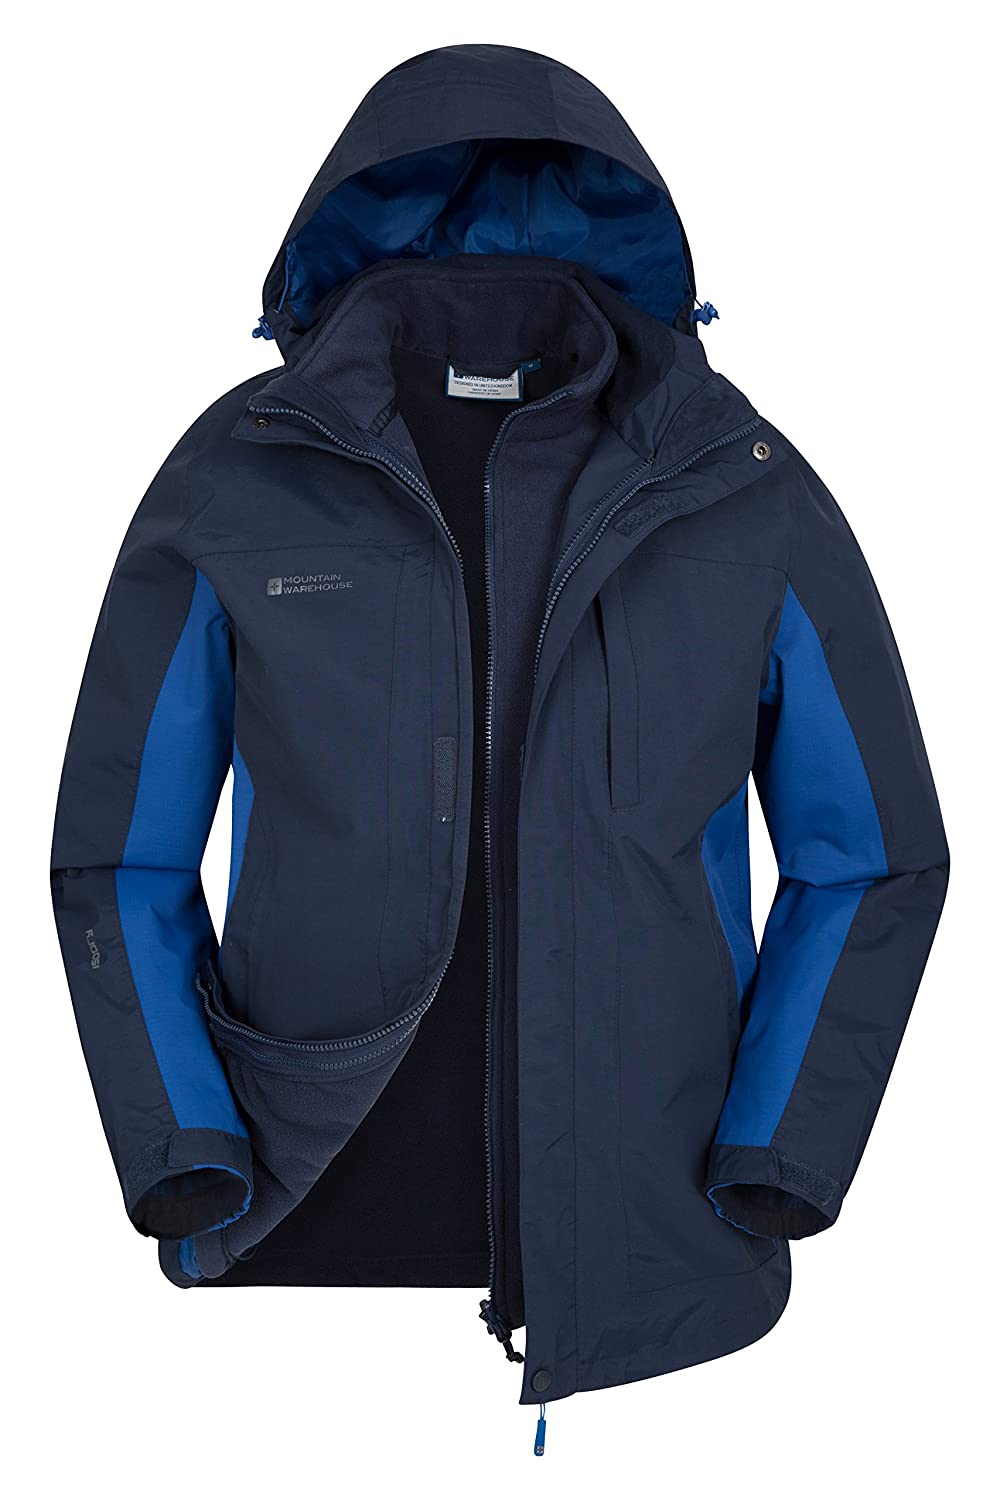 Mountain Warehouse Thunderstorm Mens 3 in 1 Jacket - All Season Coat